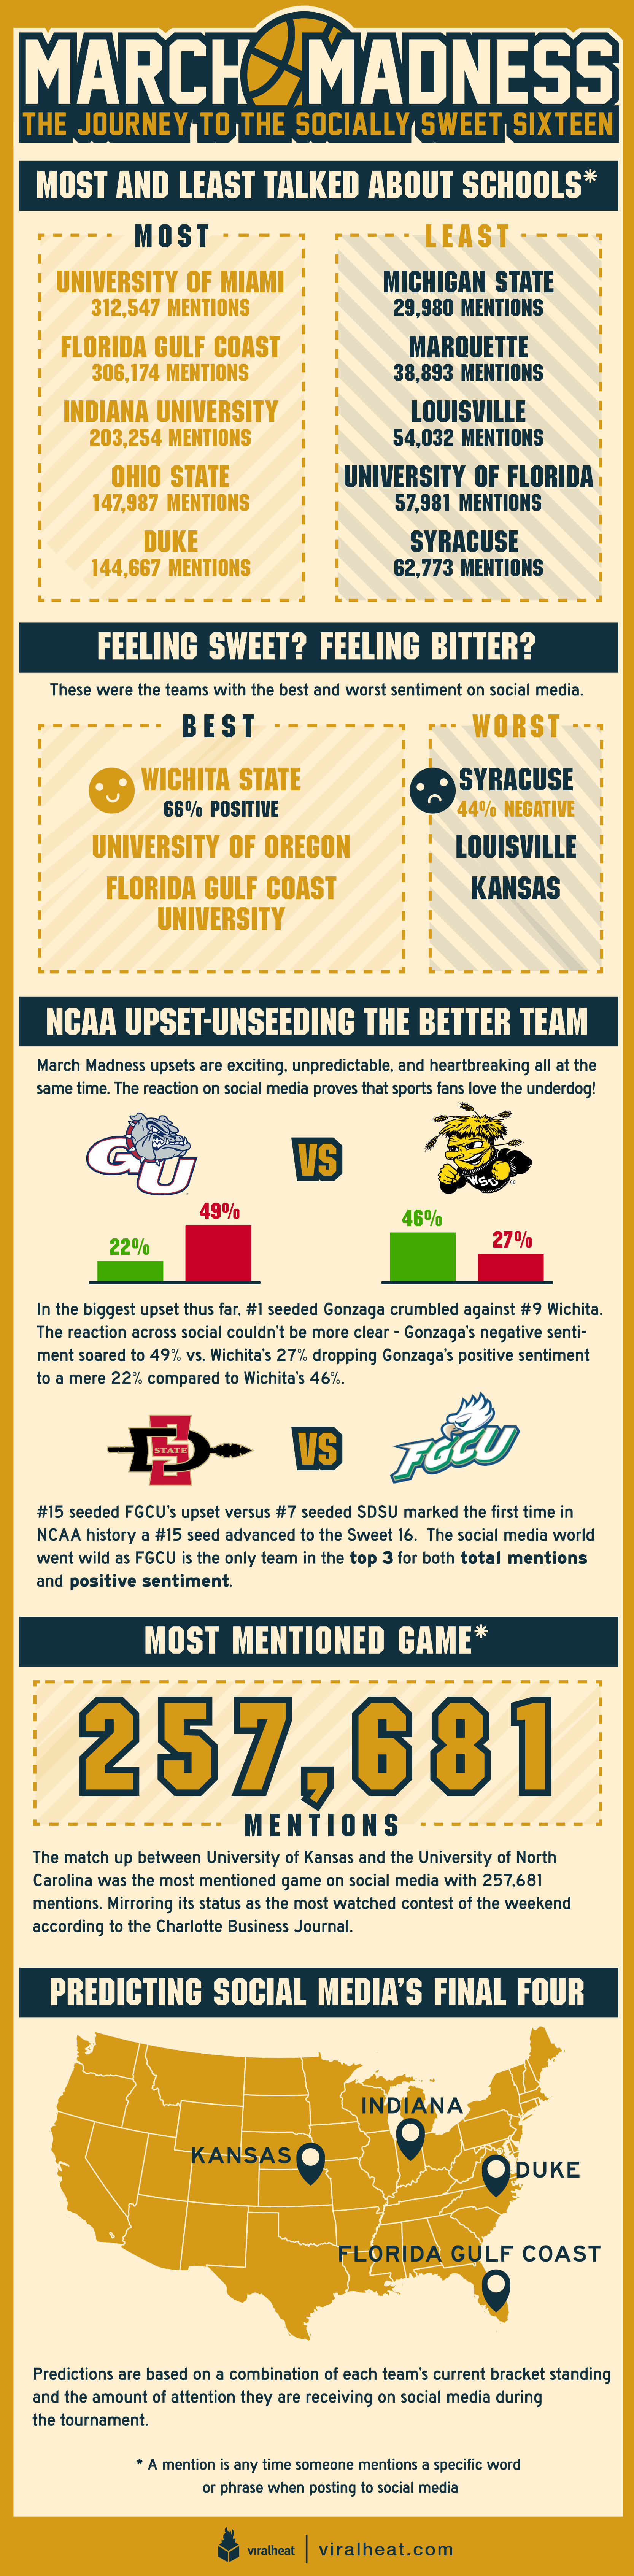 March Madness social breakdown